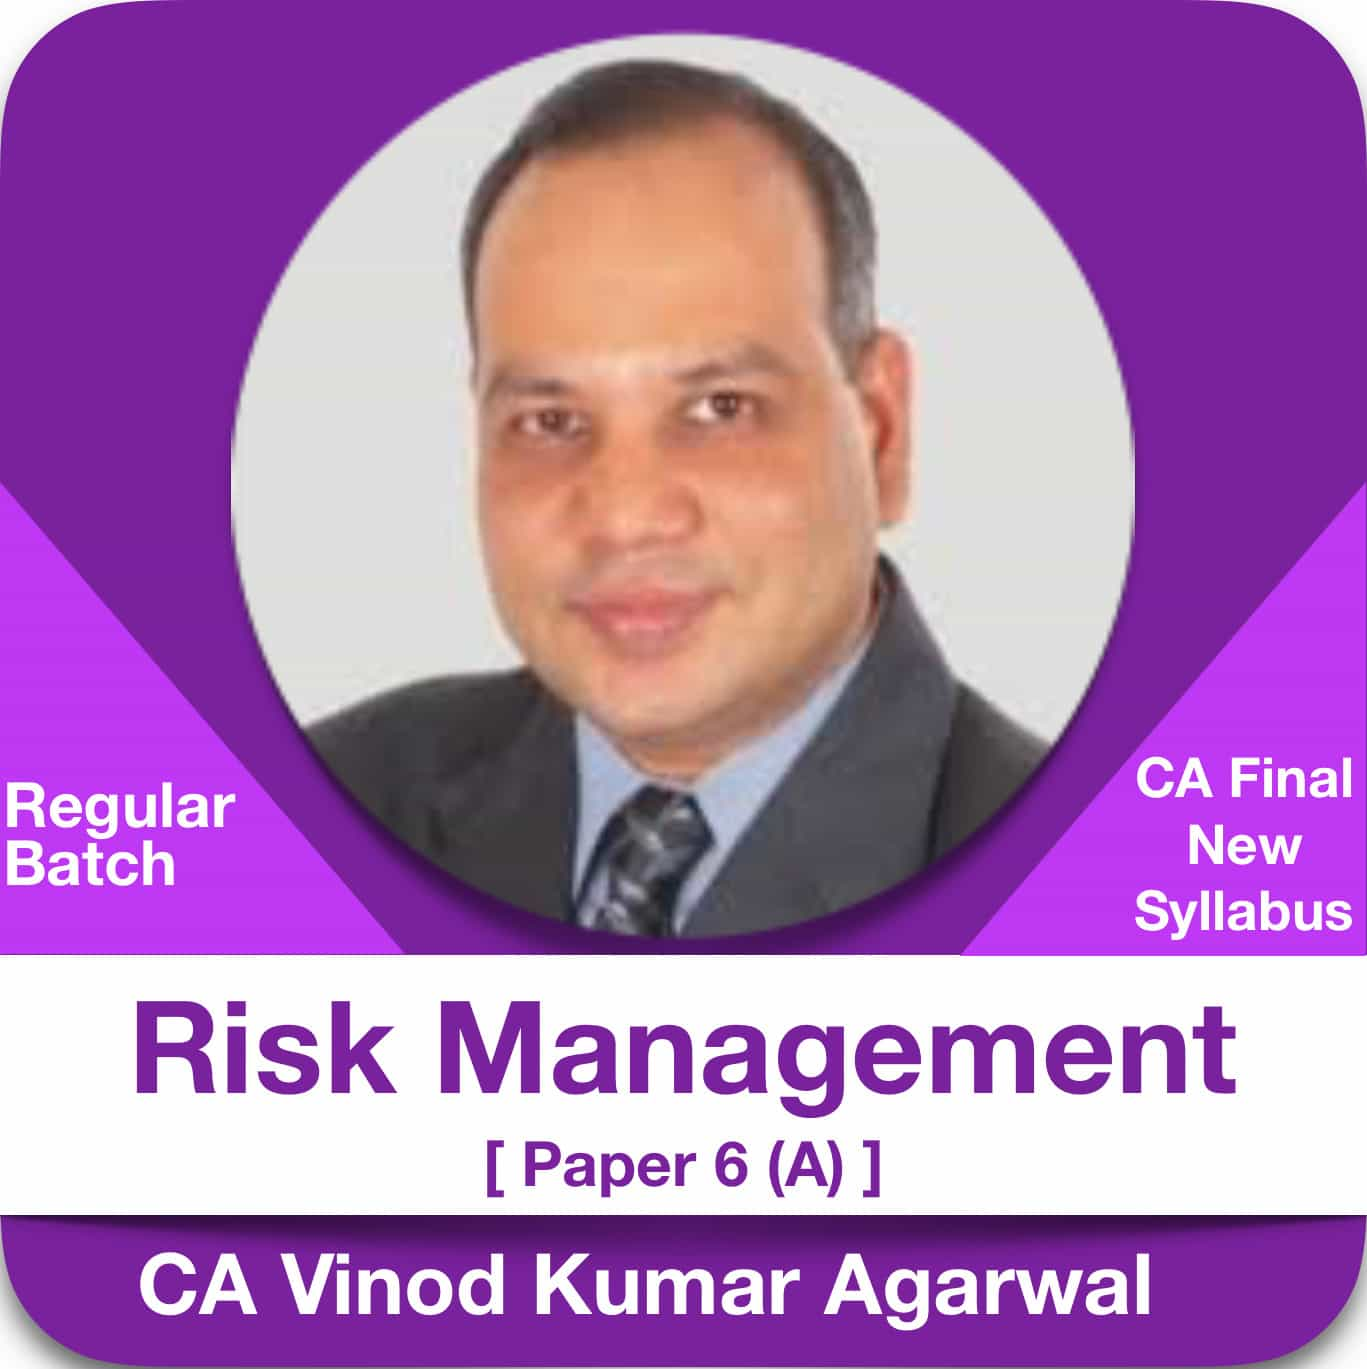 Risk Management Elective Paper 6 (A) Regular Batch ( 2 & 1.2 View )